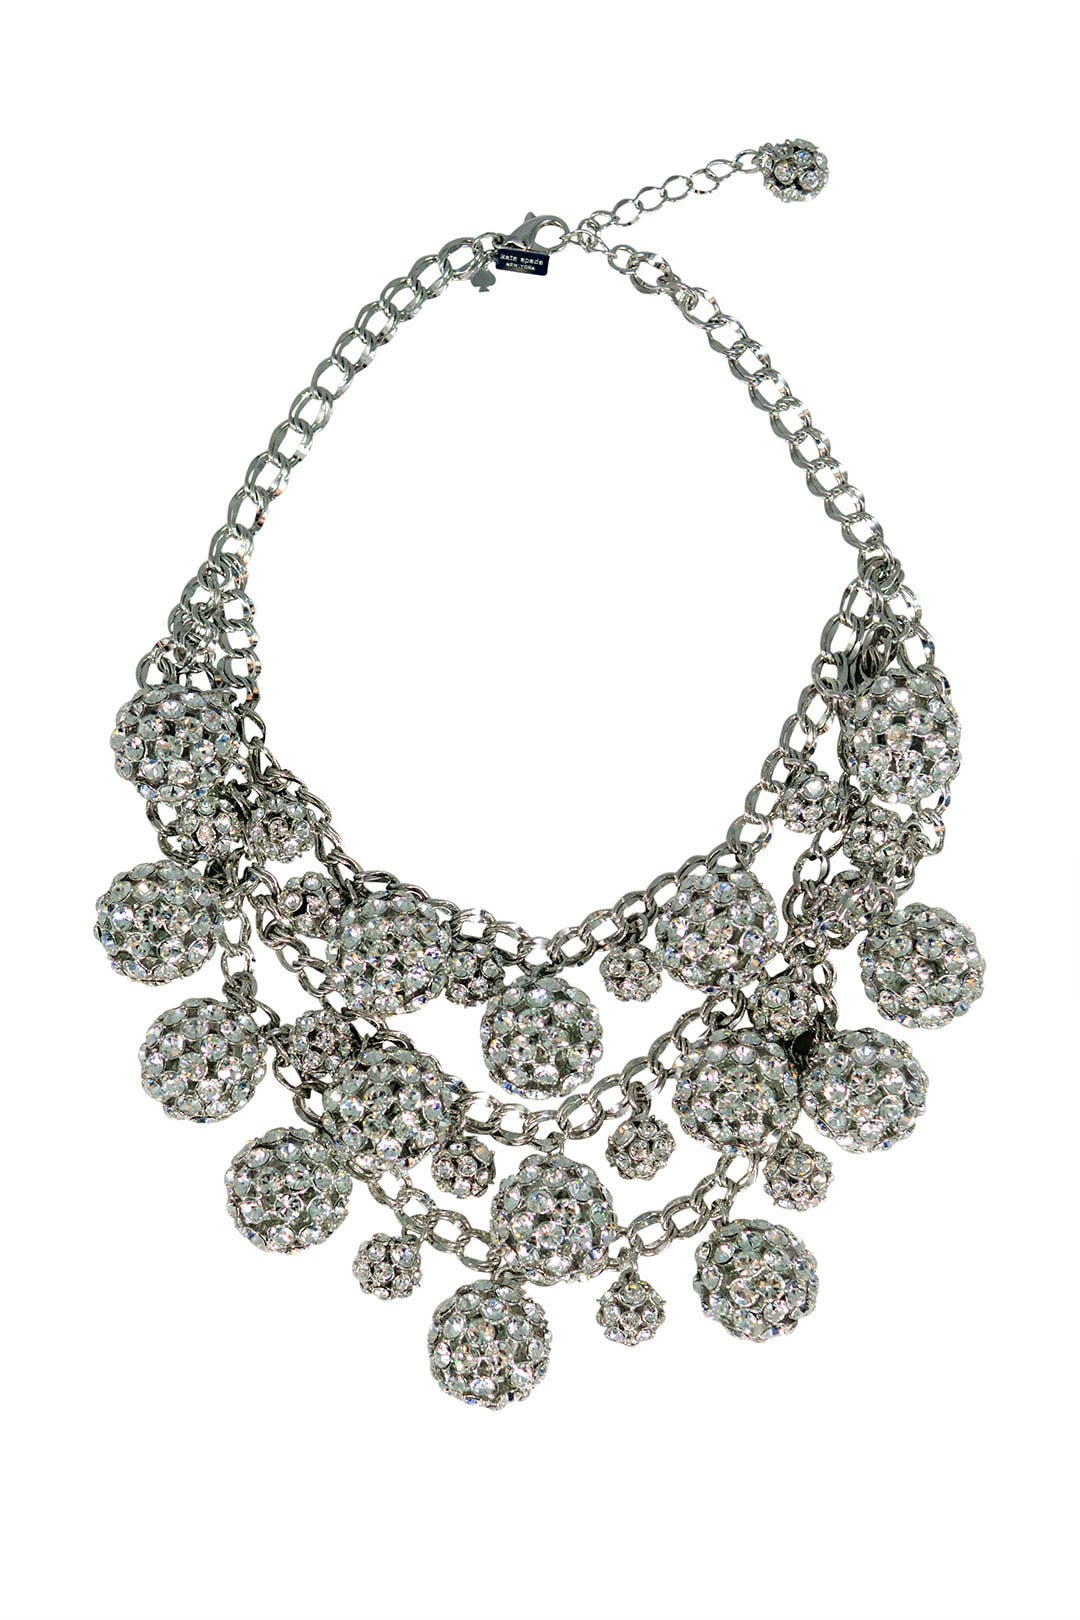 Lady Marmalade Necklace by kate spade new york accessories